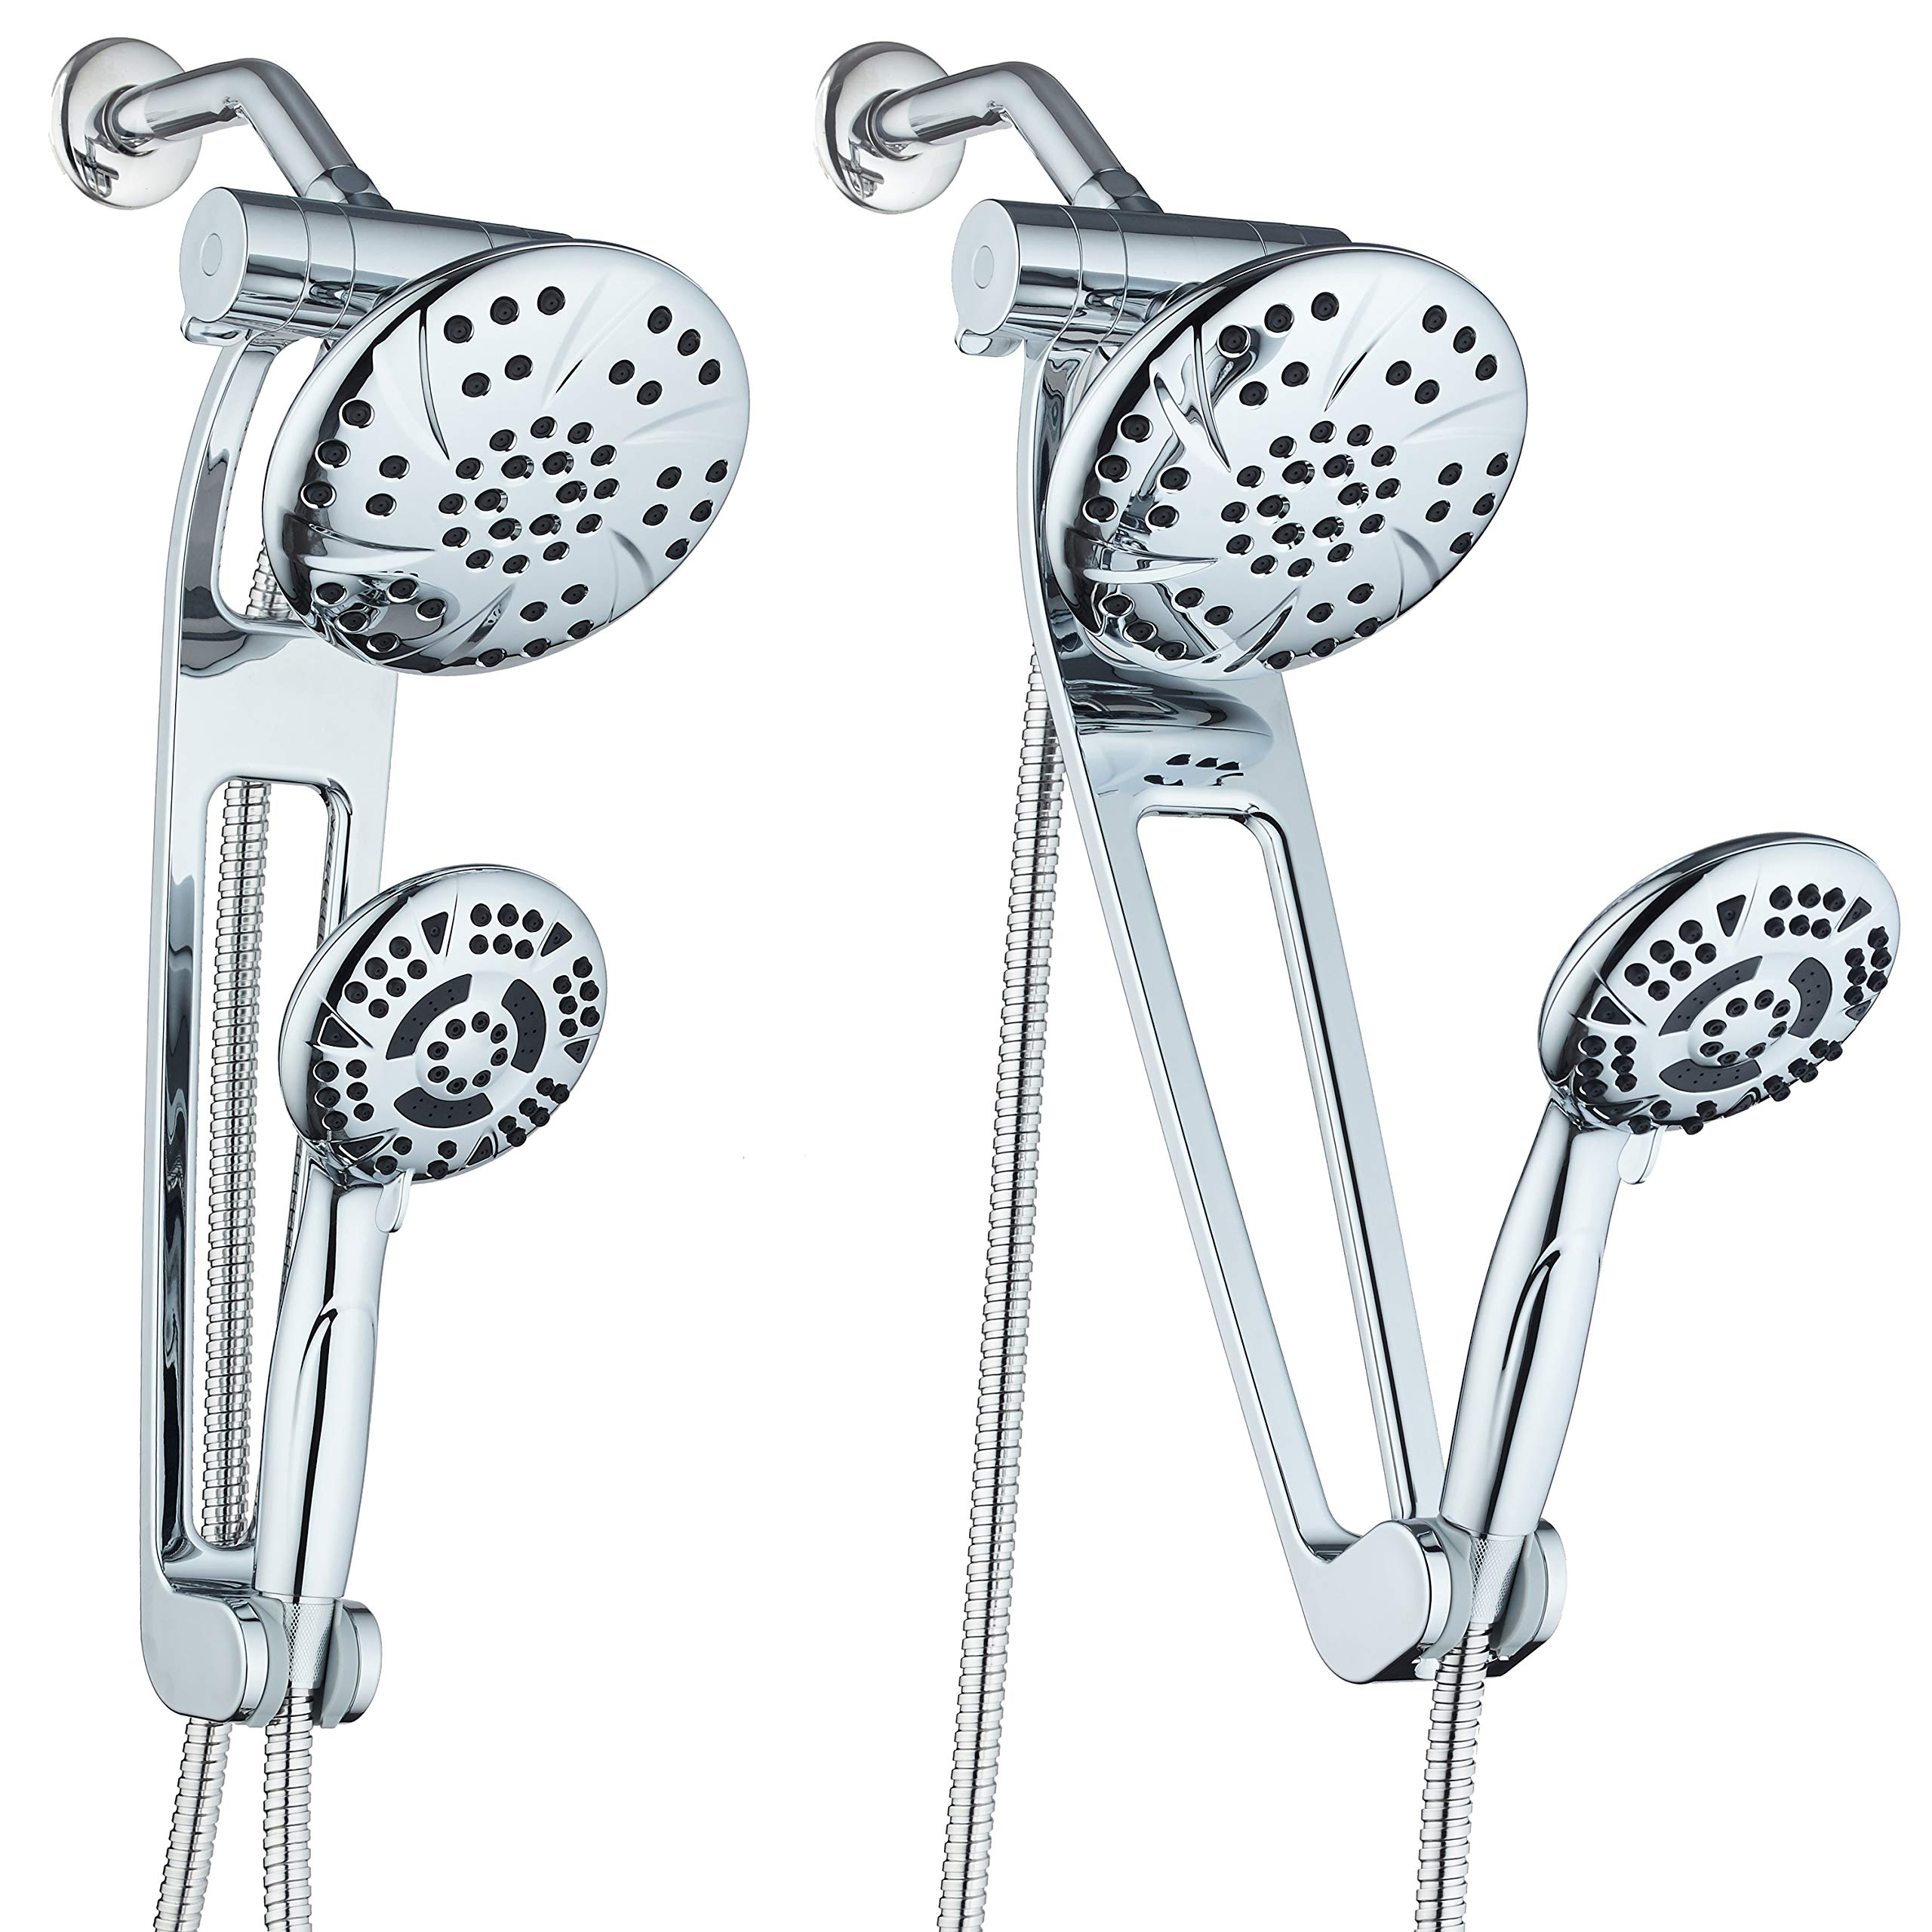 AQUABAR High-Pressure 3-way Shower Spa Combo with Adjustable 18'' Extension Arm for Easy Reach & Mobility! Enjoy Luxury 6'' Rain & Handheld Shower Head Separately or Together! All-Chrome Finish